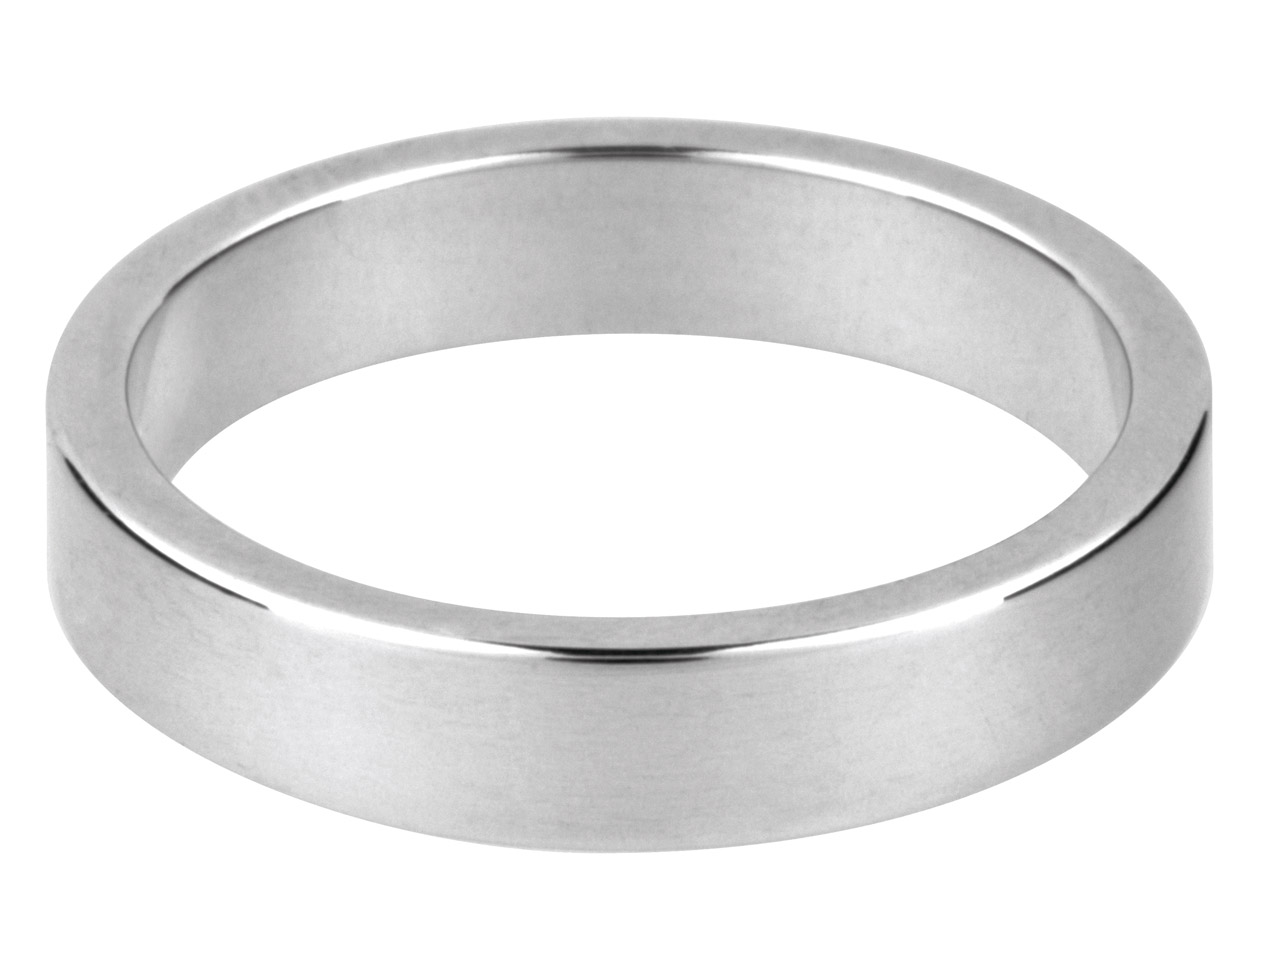 Palladium Flat Wedding Ring 8.0mm S 9.2gms Heavy Weight Hallmarked Wall Thickness 1.44mm